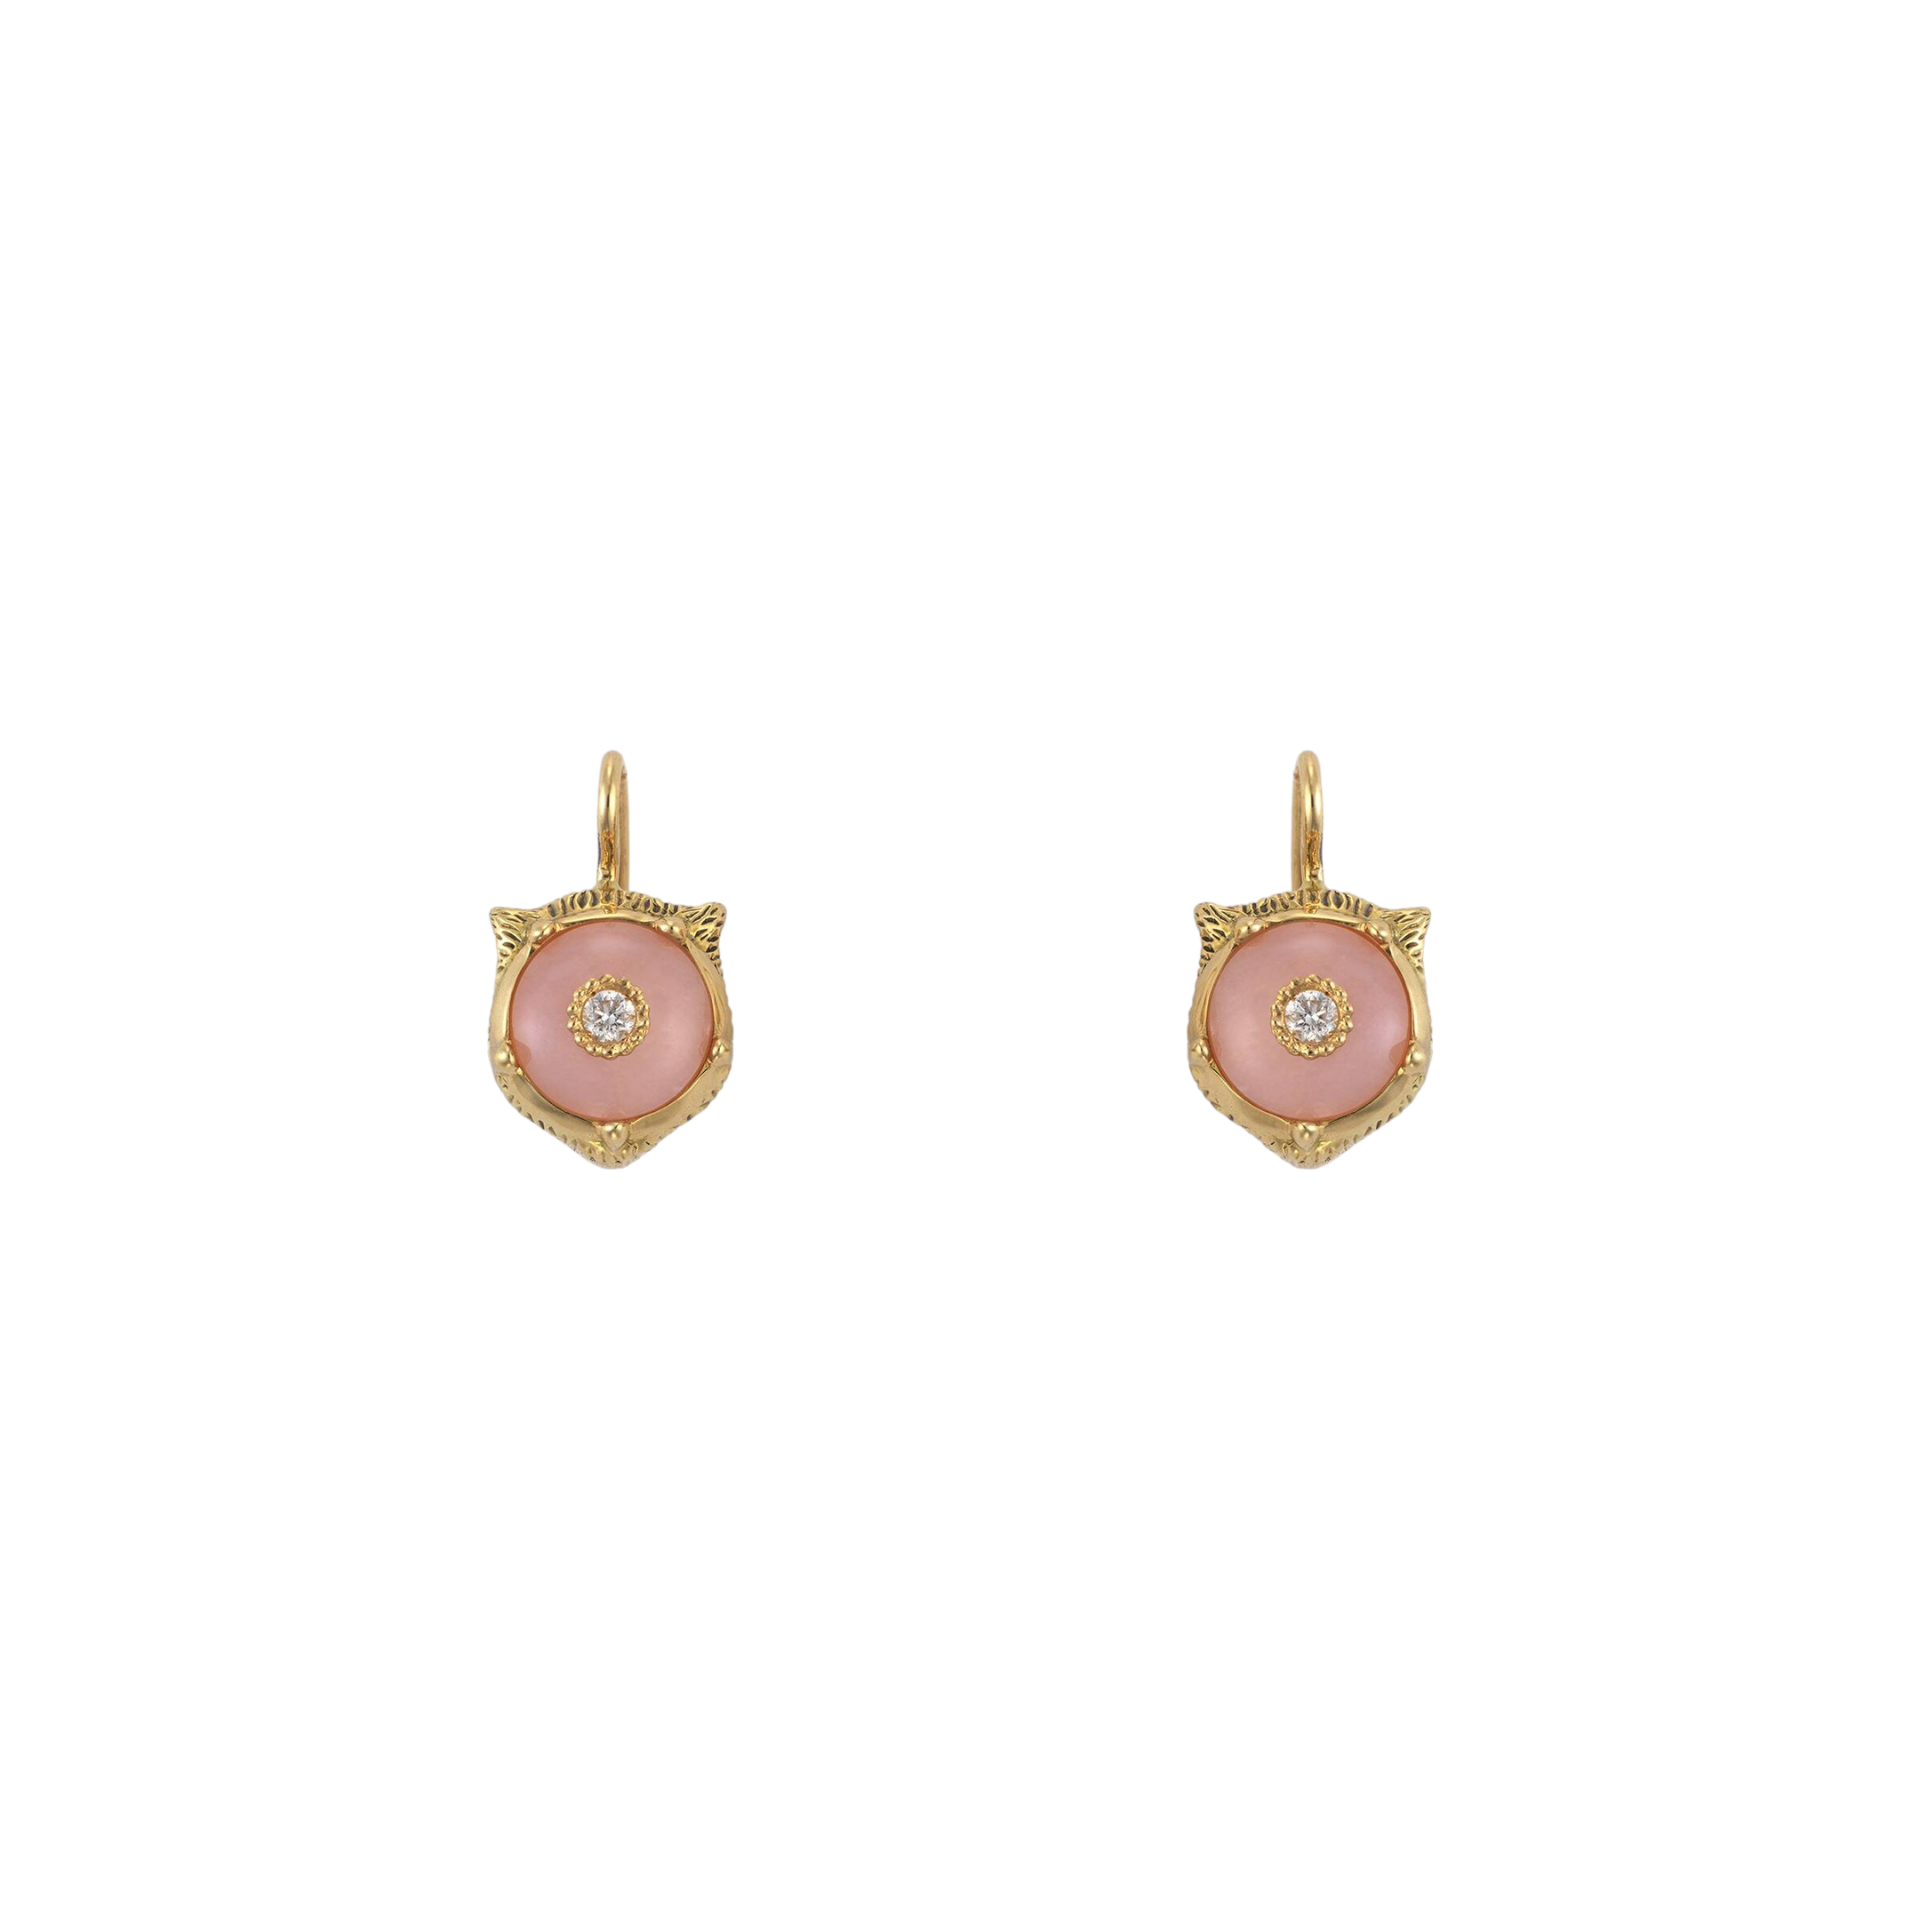 Le Marché des Merveilles Earrings in 18k Yellow Gold with Pink Opal and Diamonds - Orsini Jewellers NZ